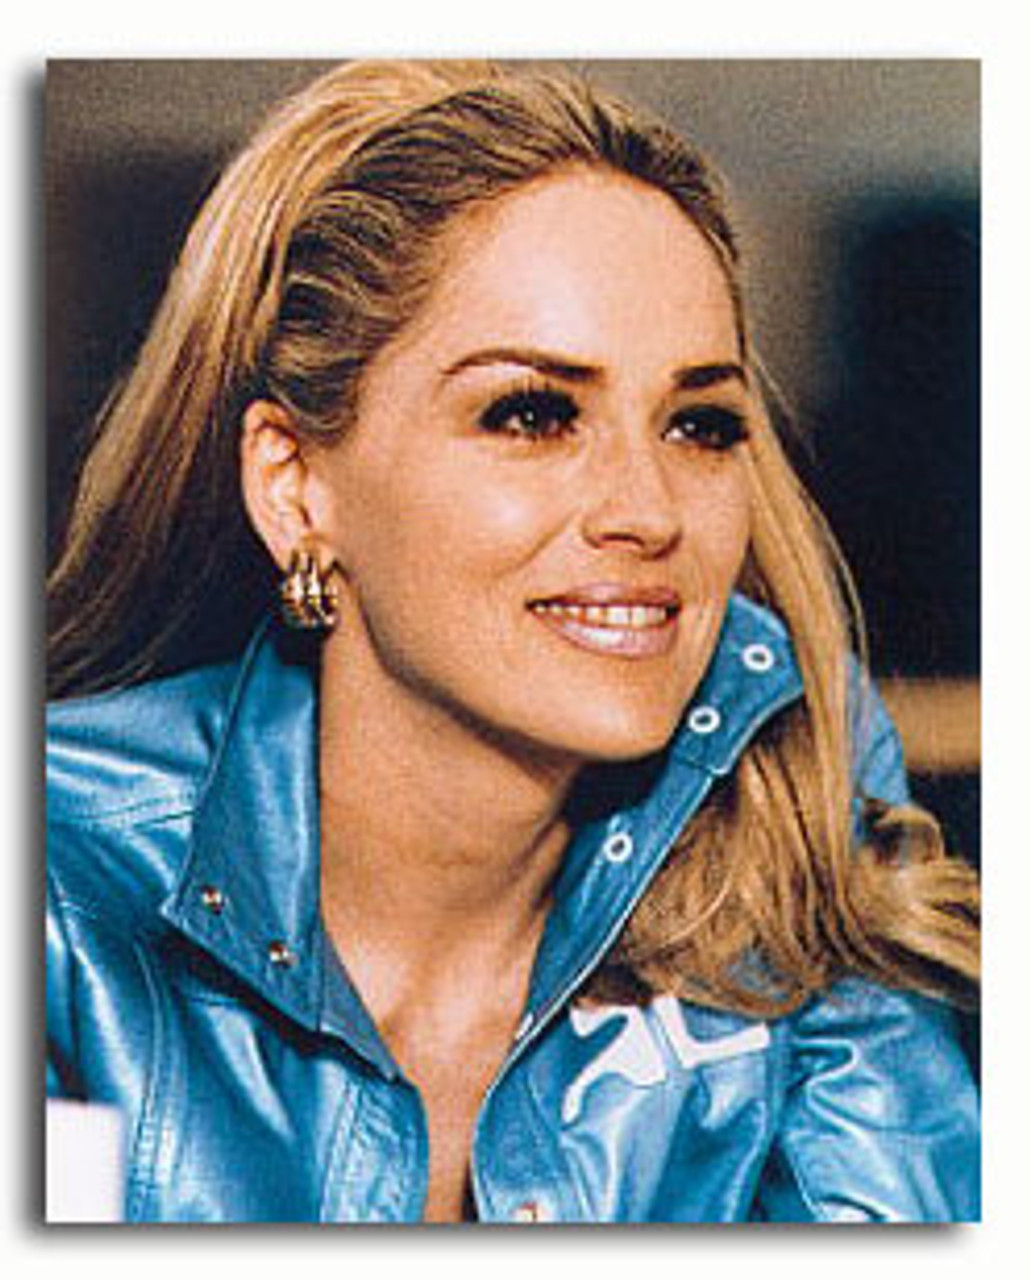 ss2850289 movie picture of sharon stone buy celebrity